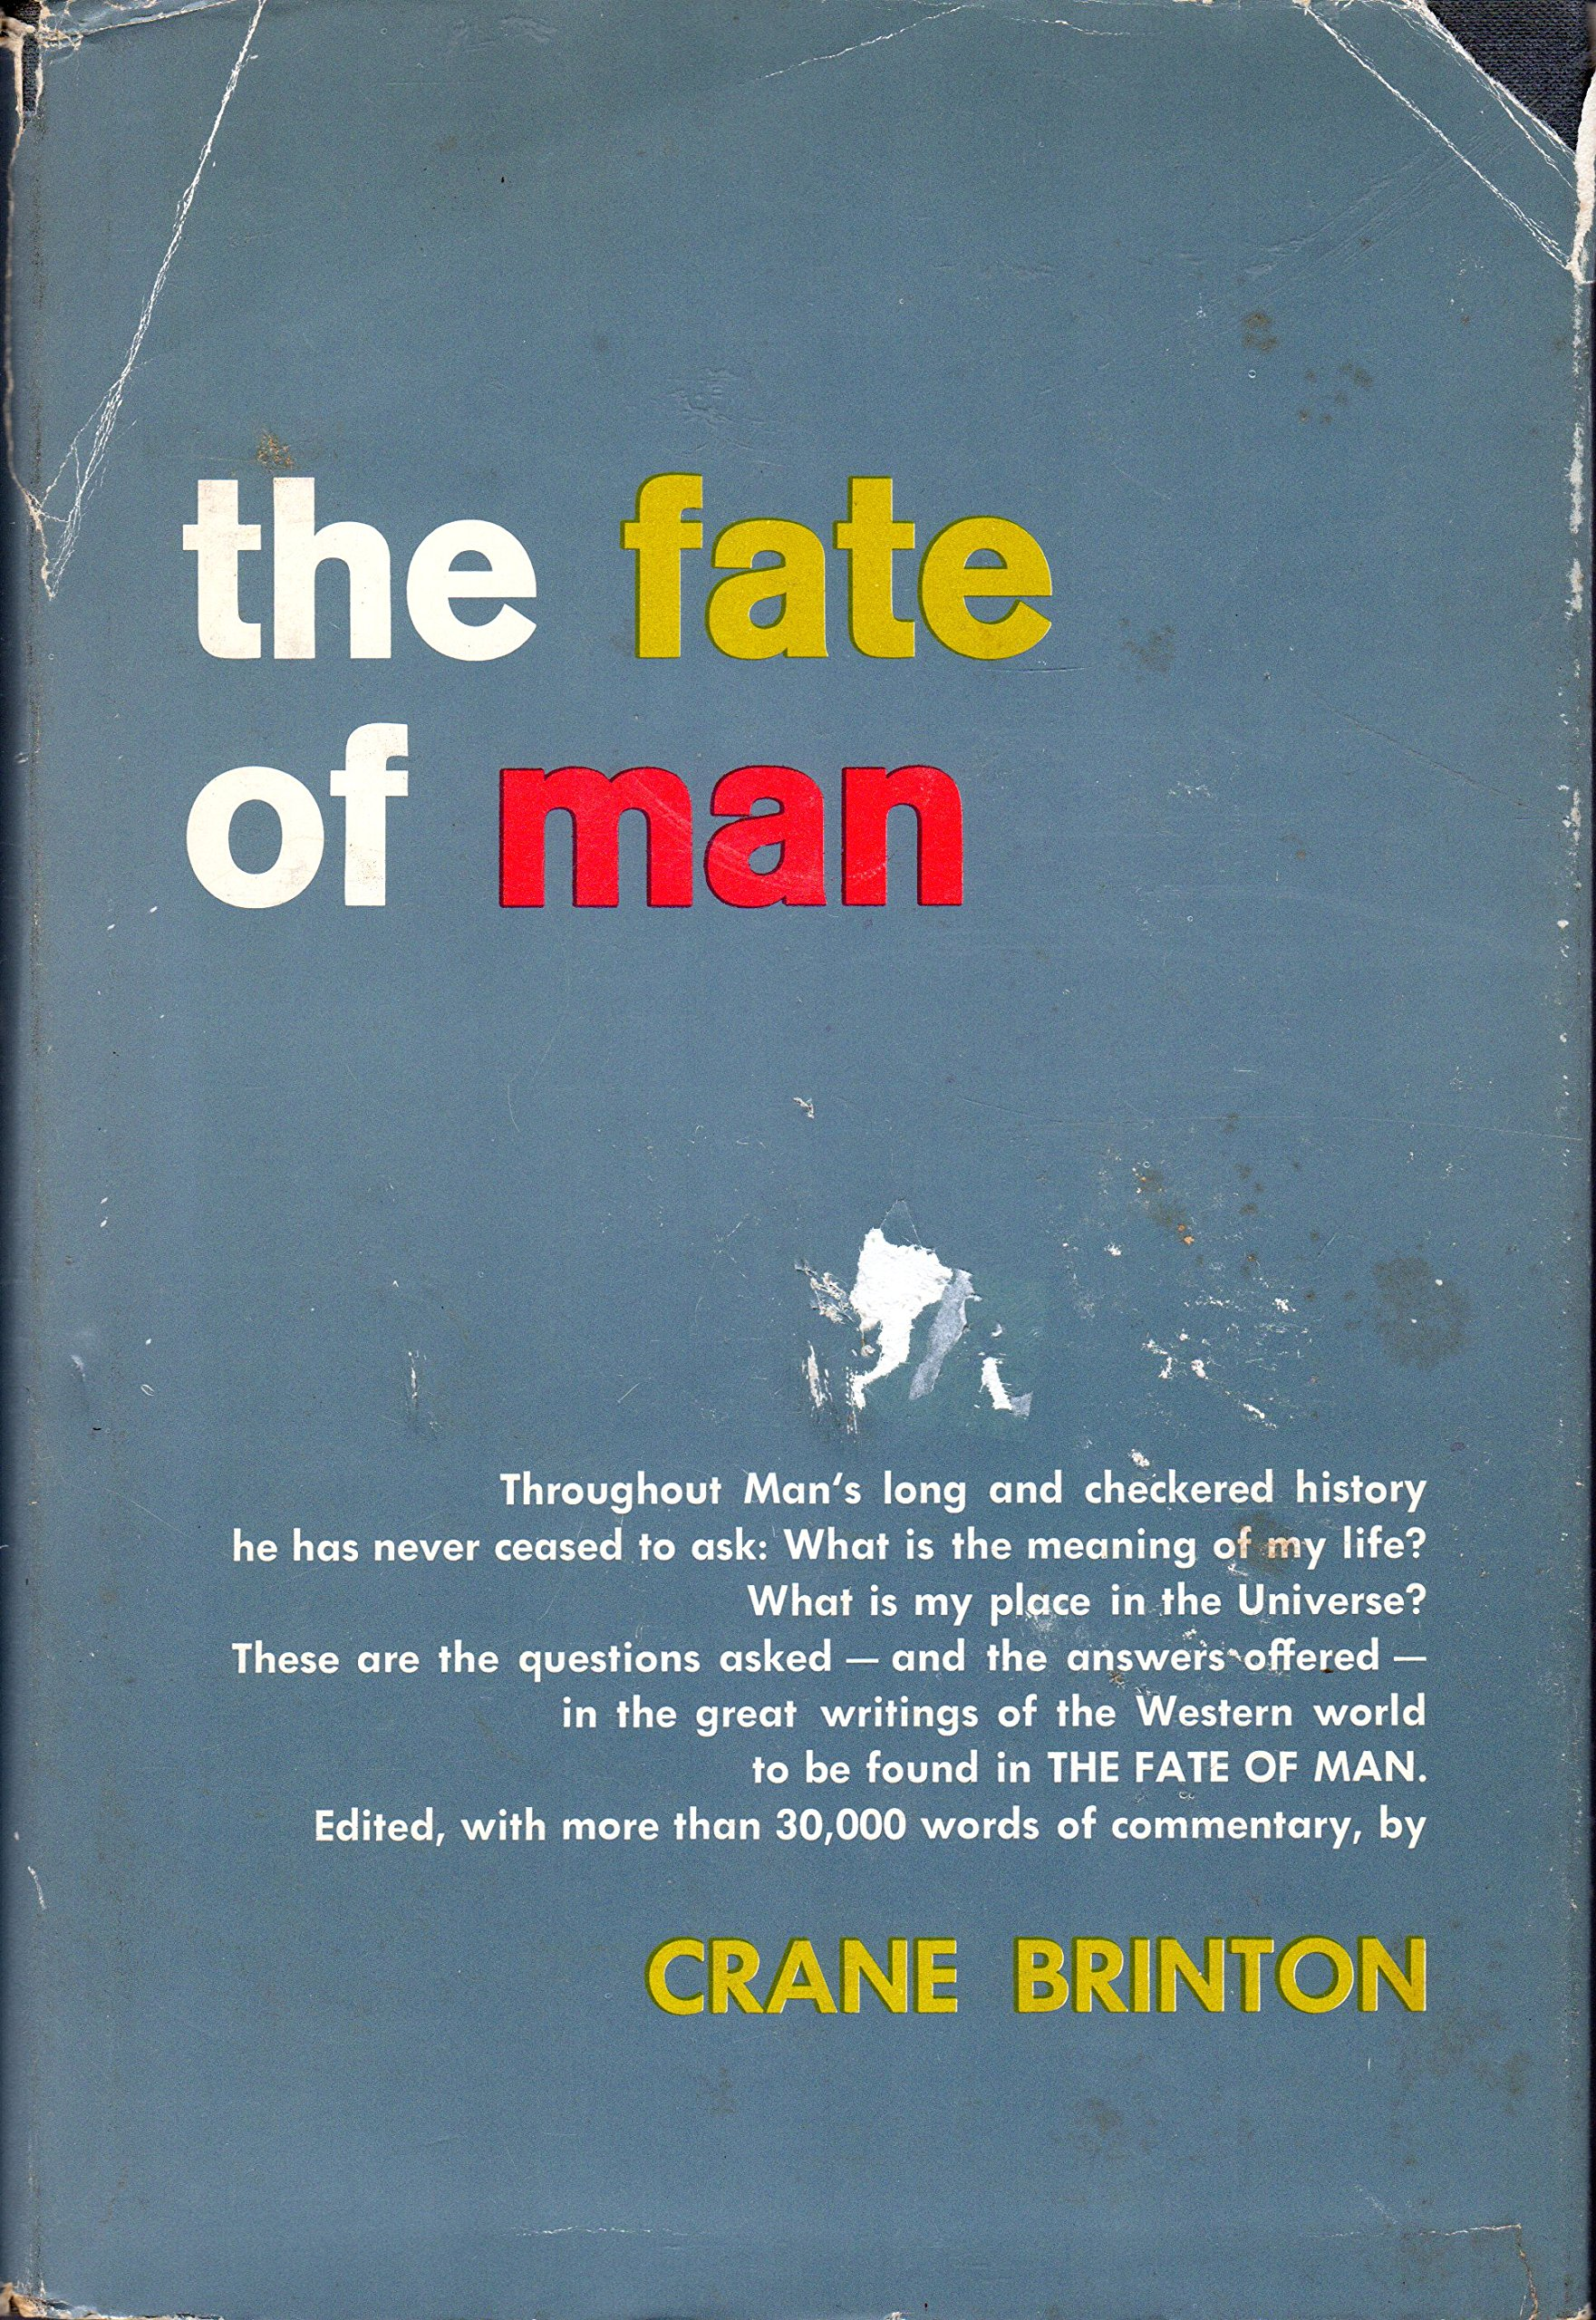 The fate of man: the meaning of the title of the story of Sholokhov (composition)